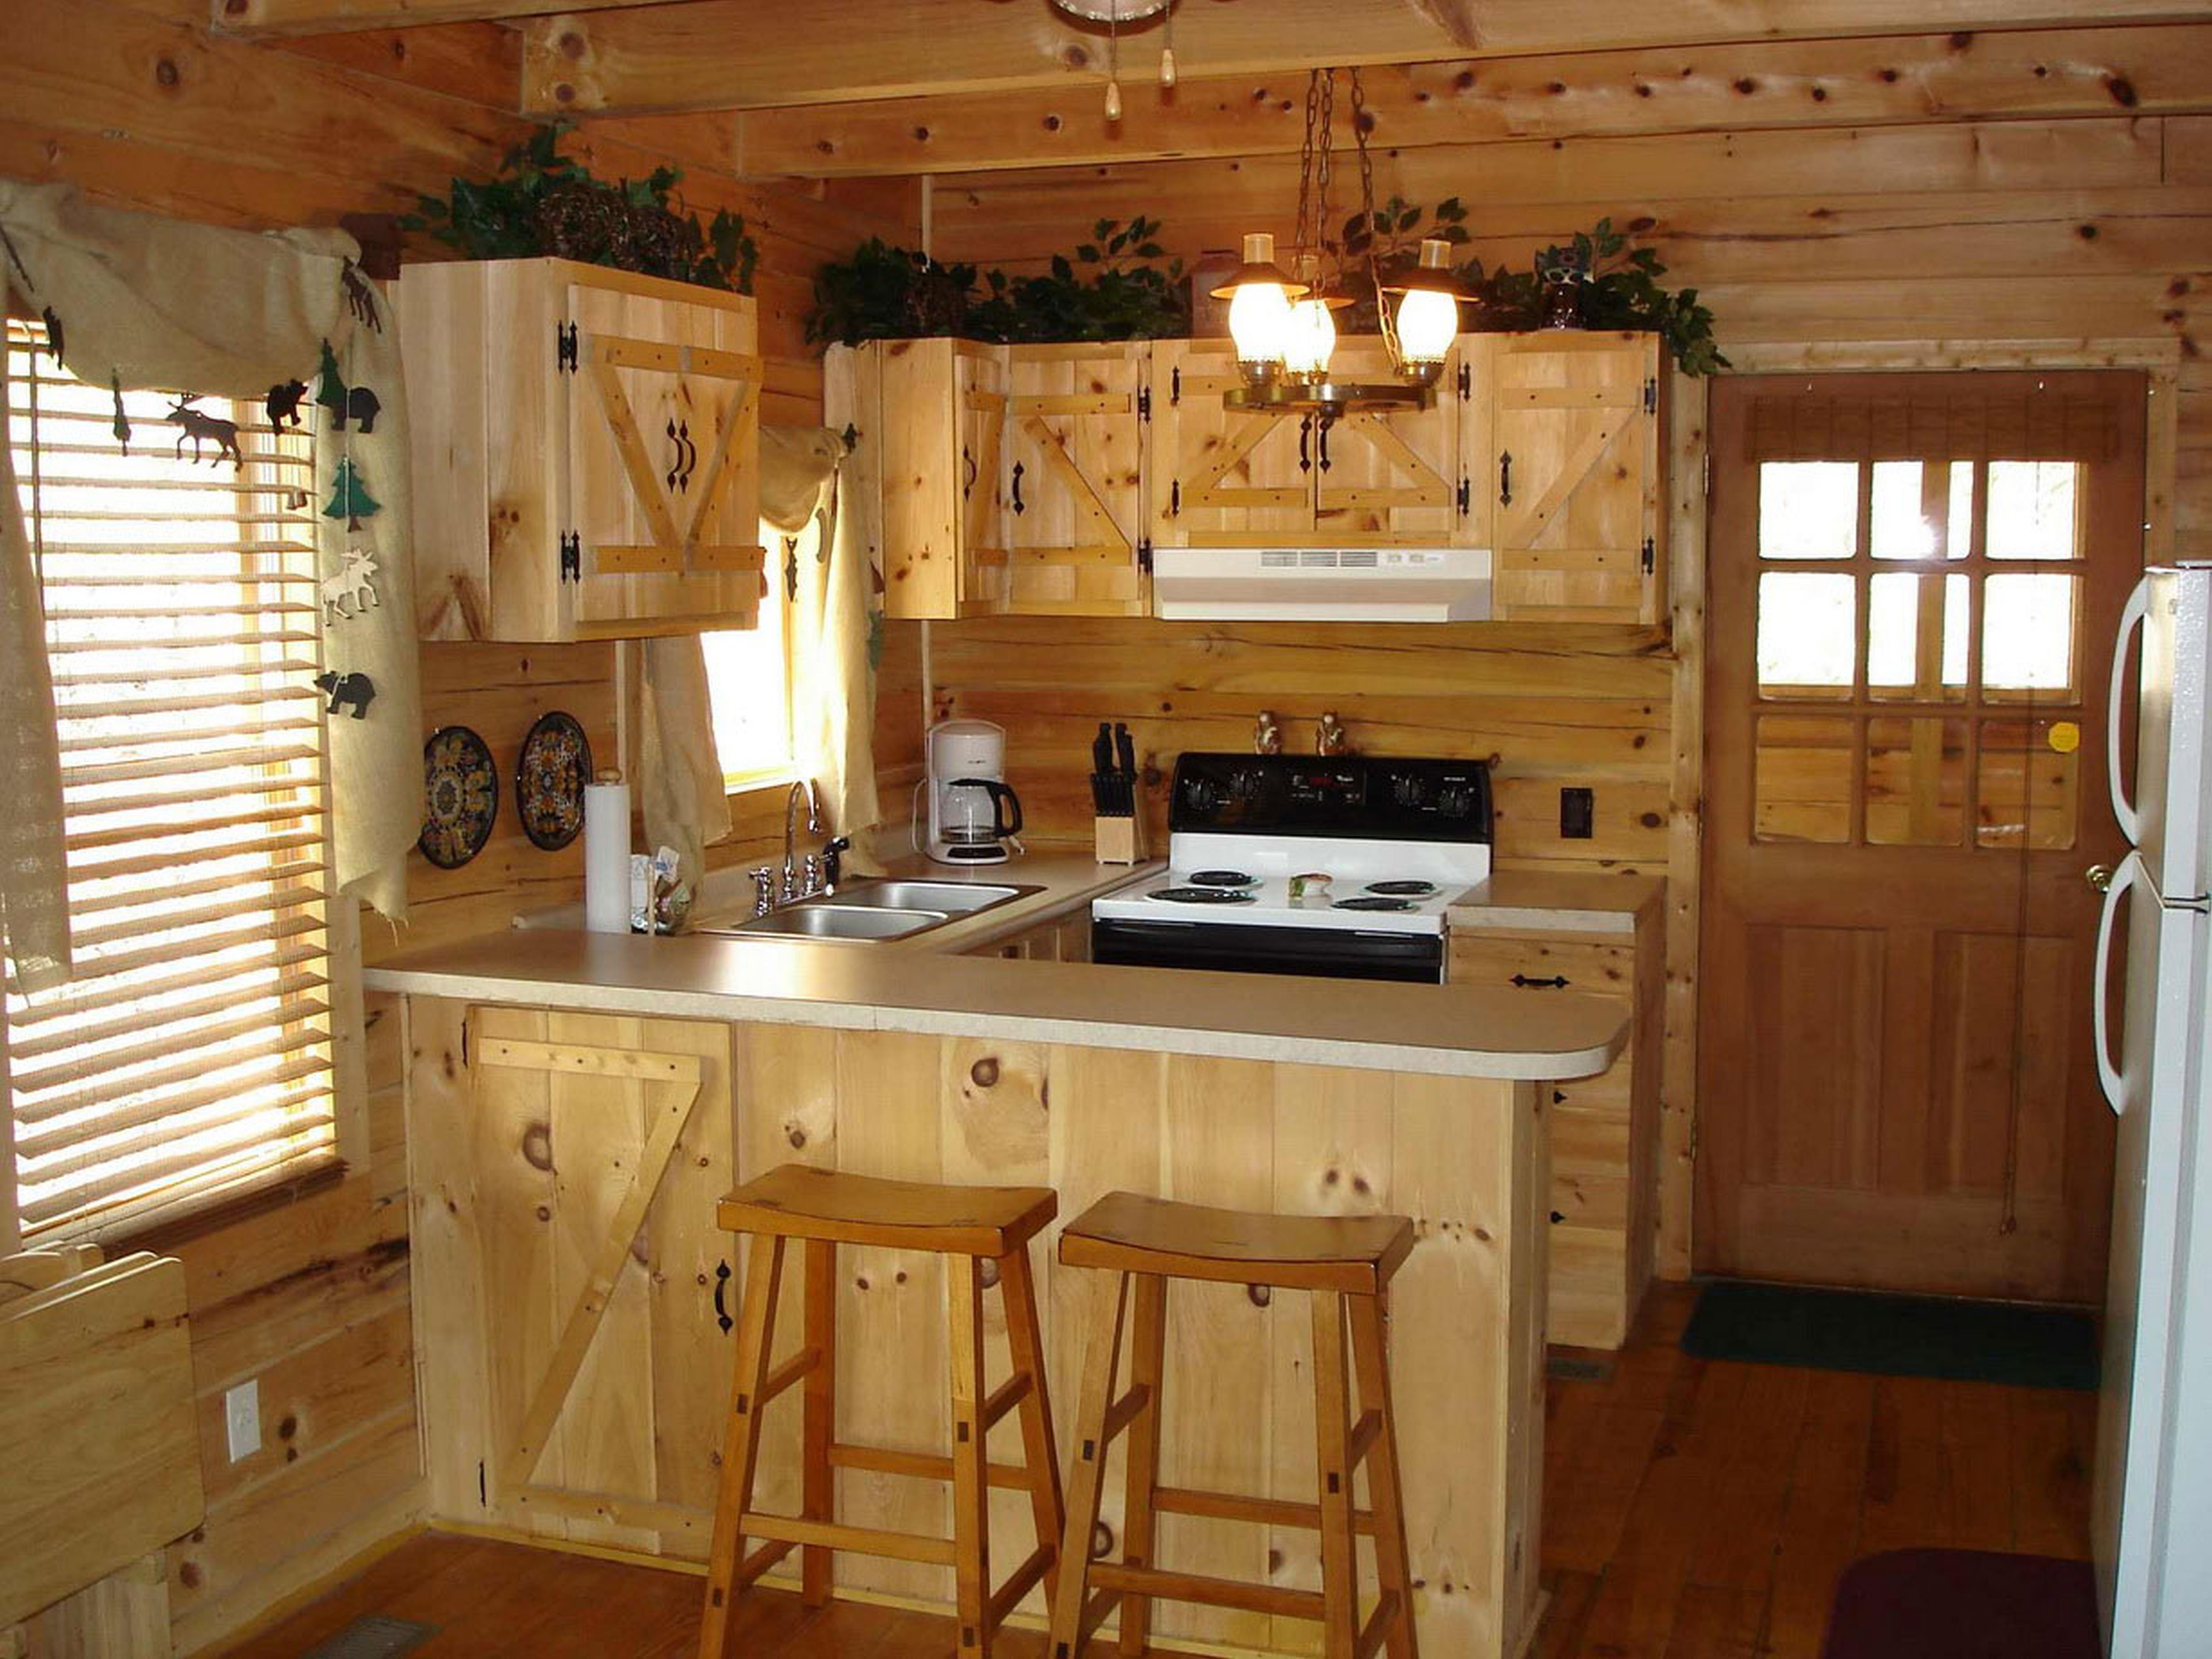 Furniture Very Small Rustic Country Kitchen After Remodel With